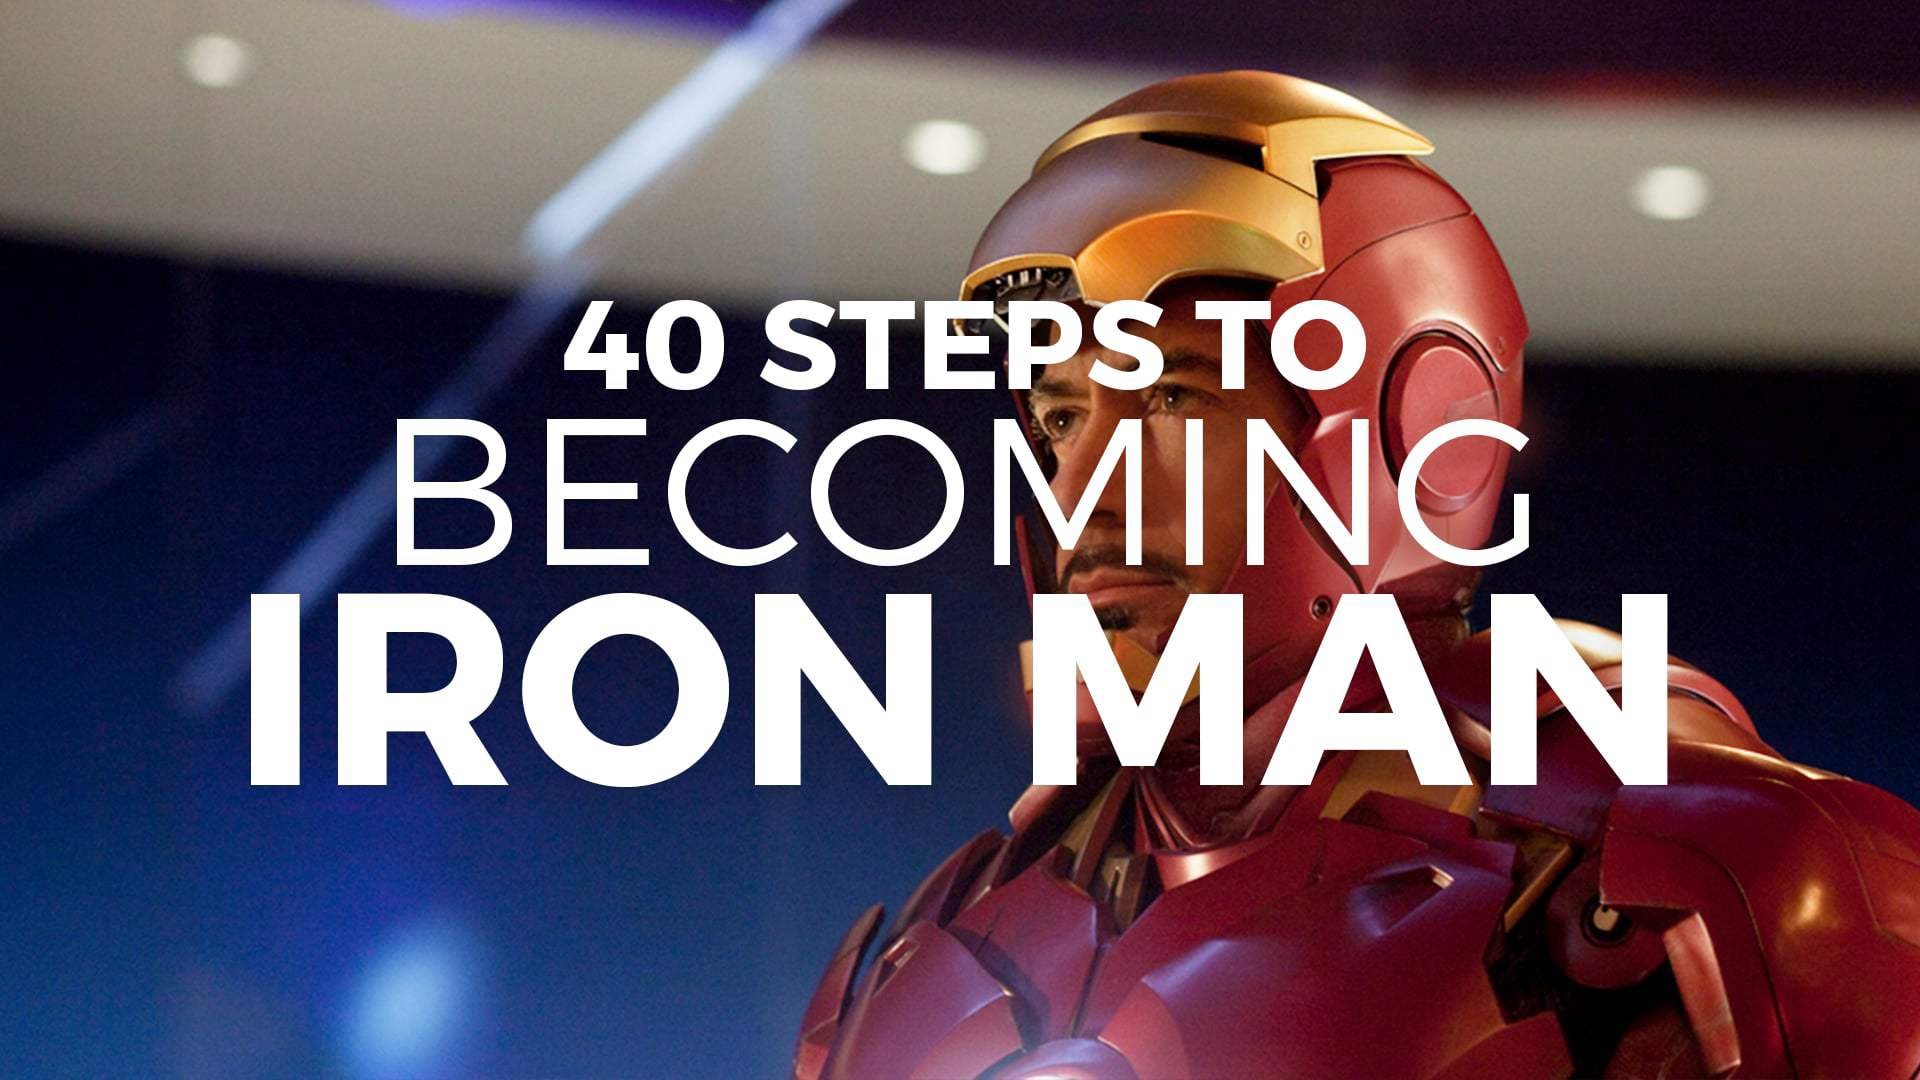 40 Steps to becoming Iron Man in Real Life - Justin Campbell-Platt